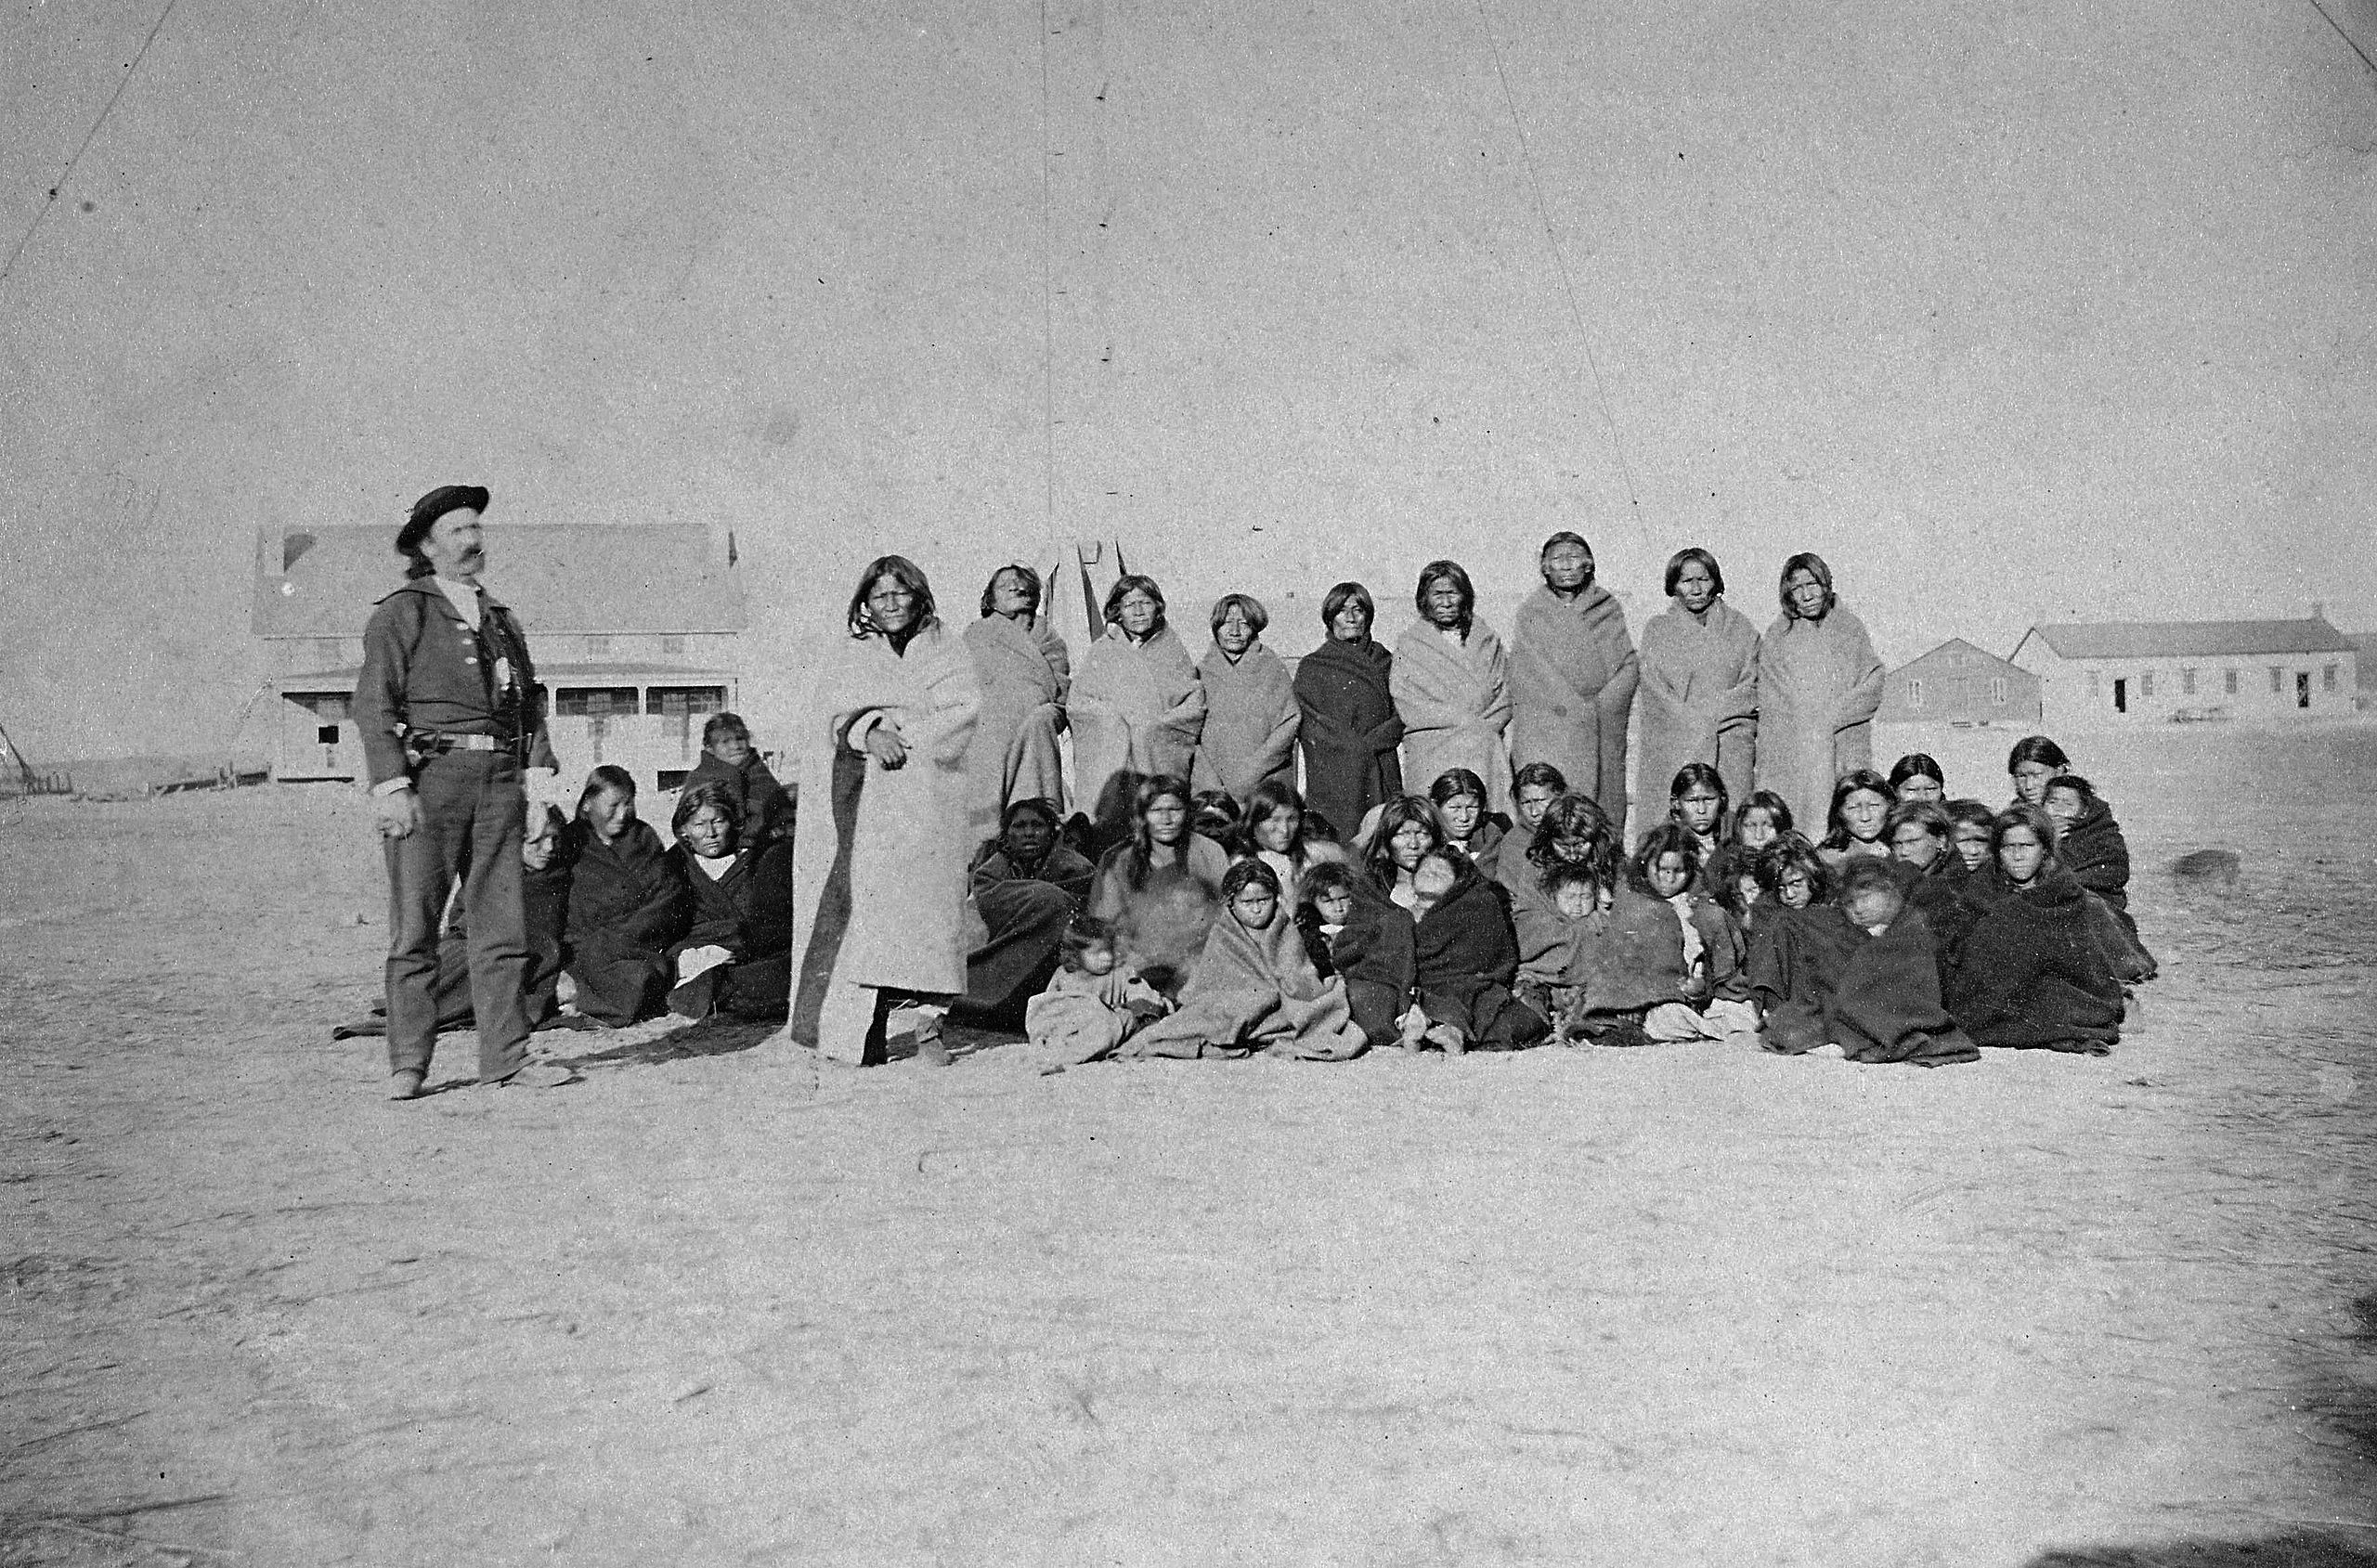 Cheyenne captives, taken at Fort Dodge, Kansas en route to the stockade at Fort Hays; to the left stands U.S. Army chief of scouts John O. Austin.